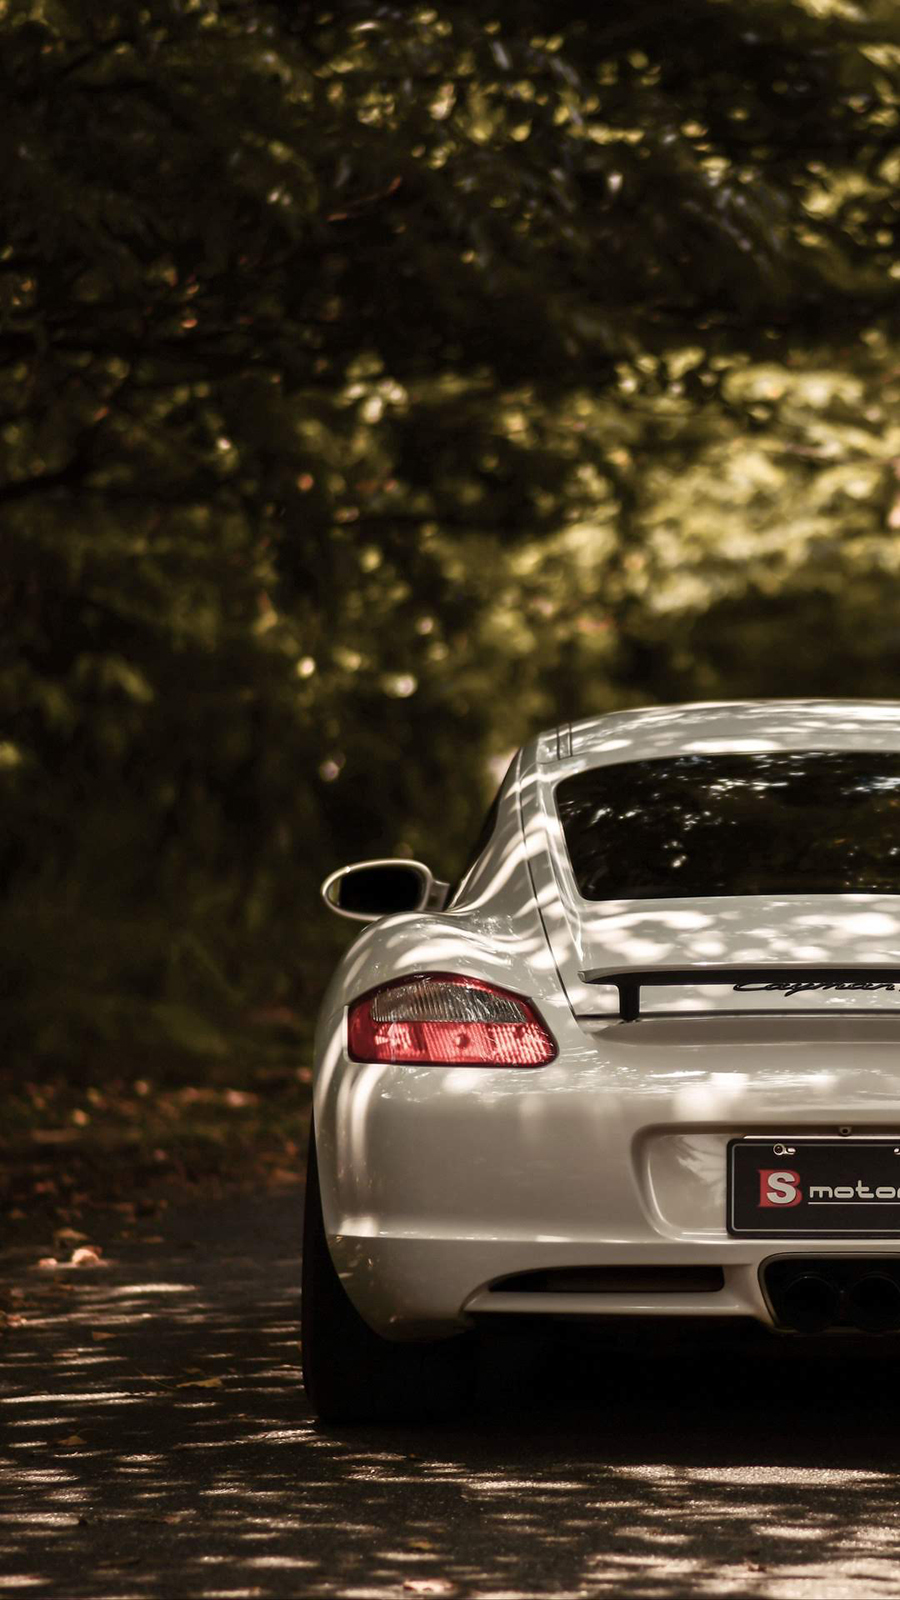 White Porsche Wallpapers – Supercars Wallpapers Free Download